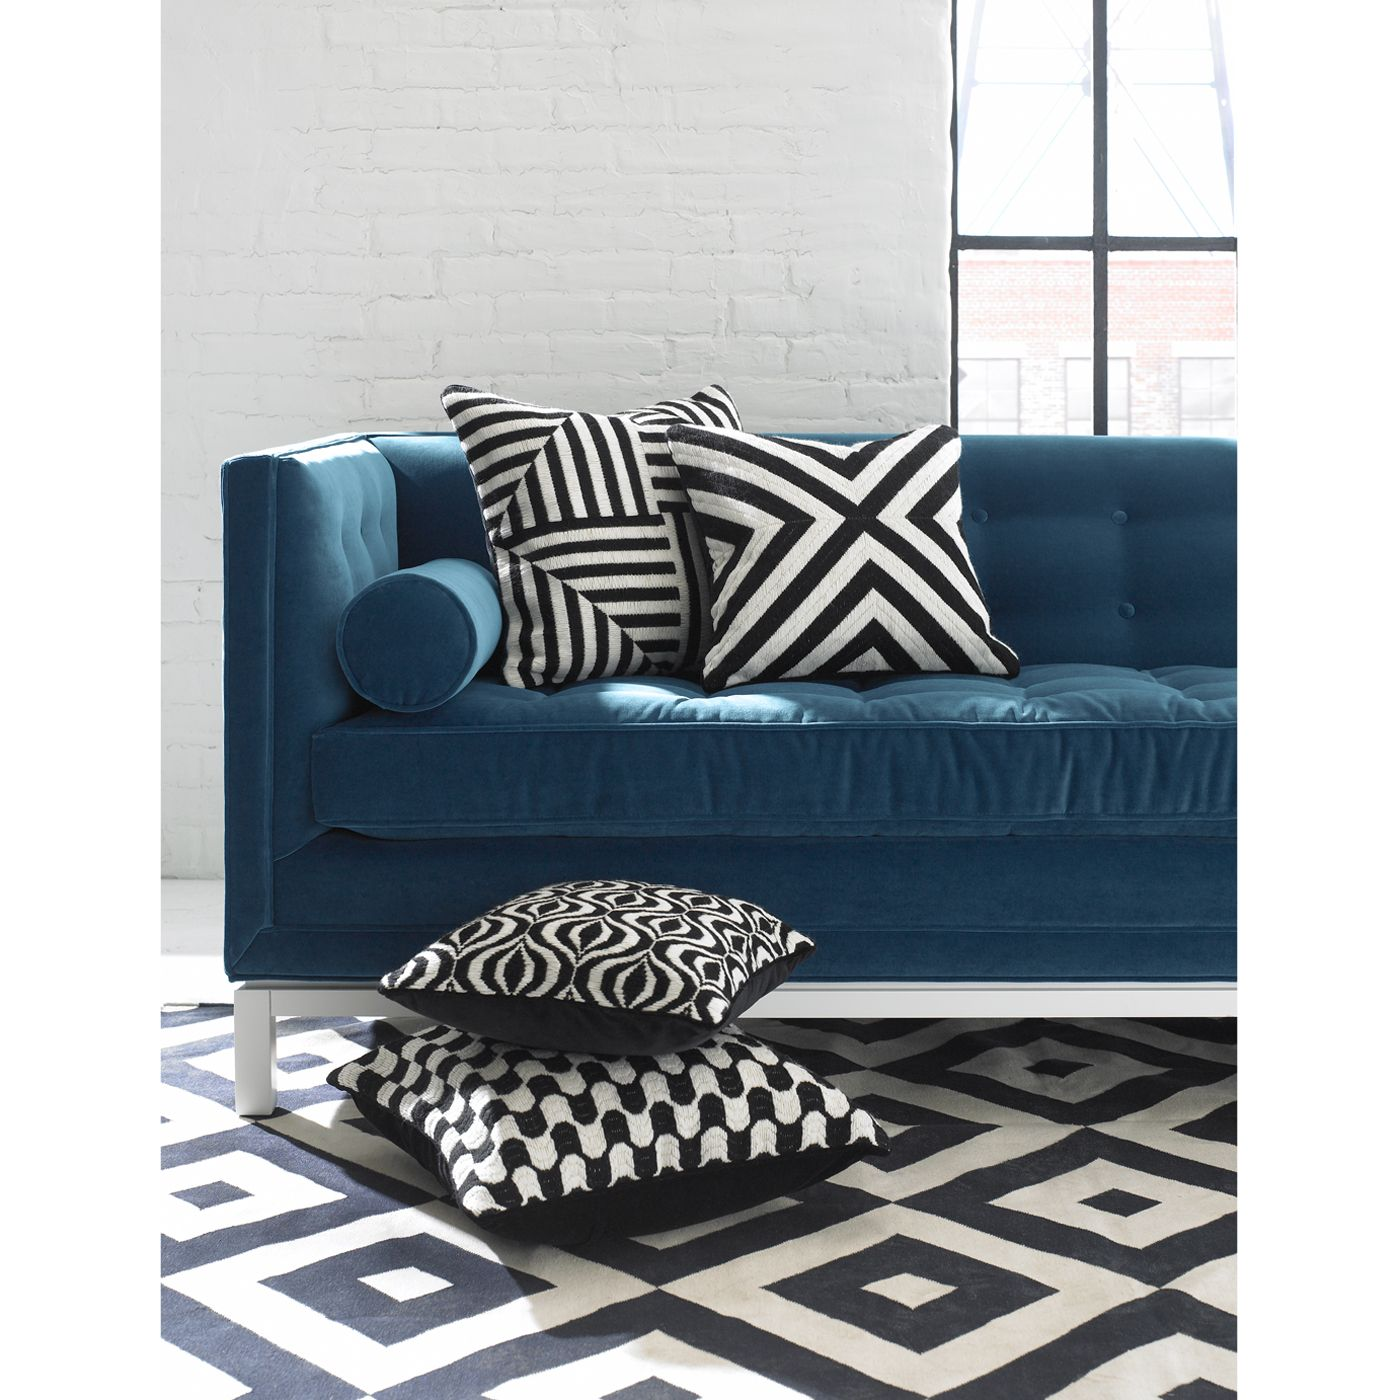 Black And Whtie Pillows Rug With A Teal Couch Black And White Sofa Black And White Pillows Blue Sofa